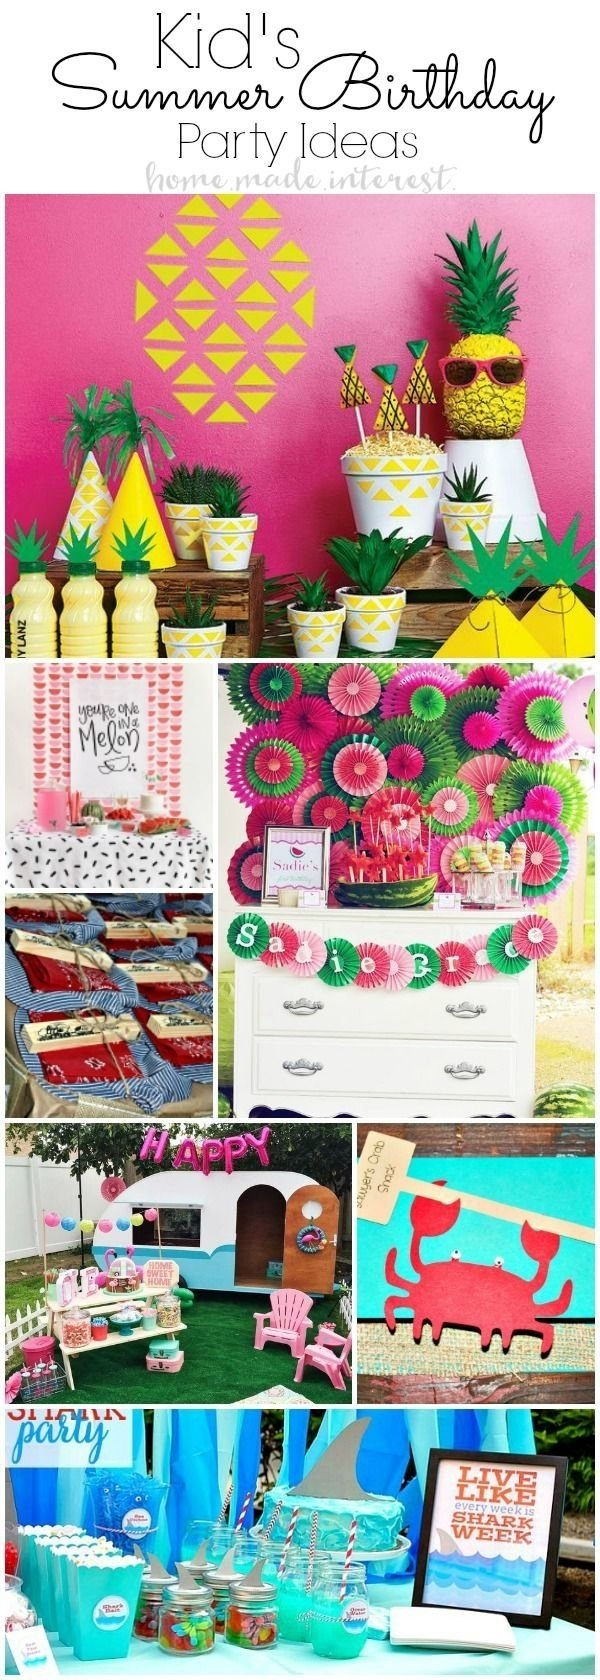 10 Attractive Birthday Party Ideas For Boys Age 9 257 Best Real Birthdays Images